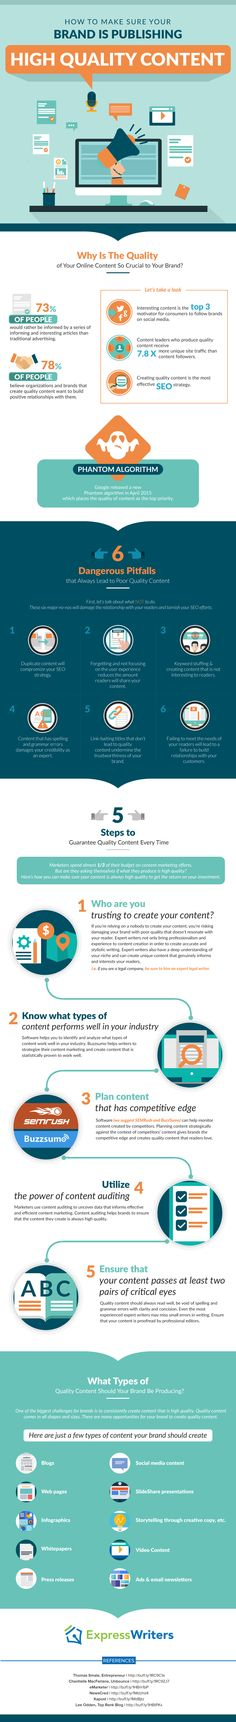 5 Steps to Guarantee Quality Content Every Time - #infographic